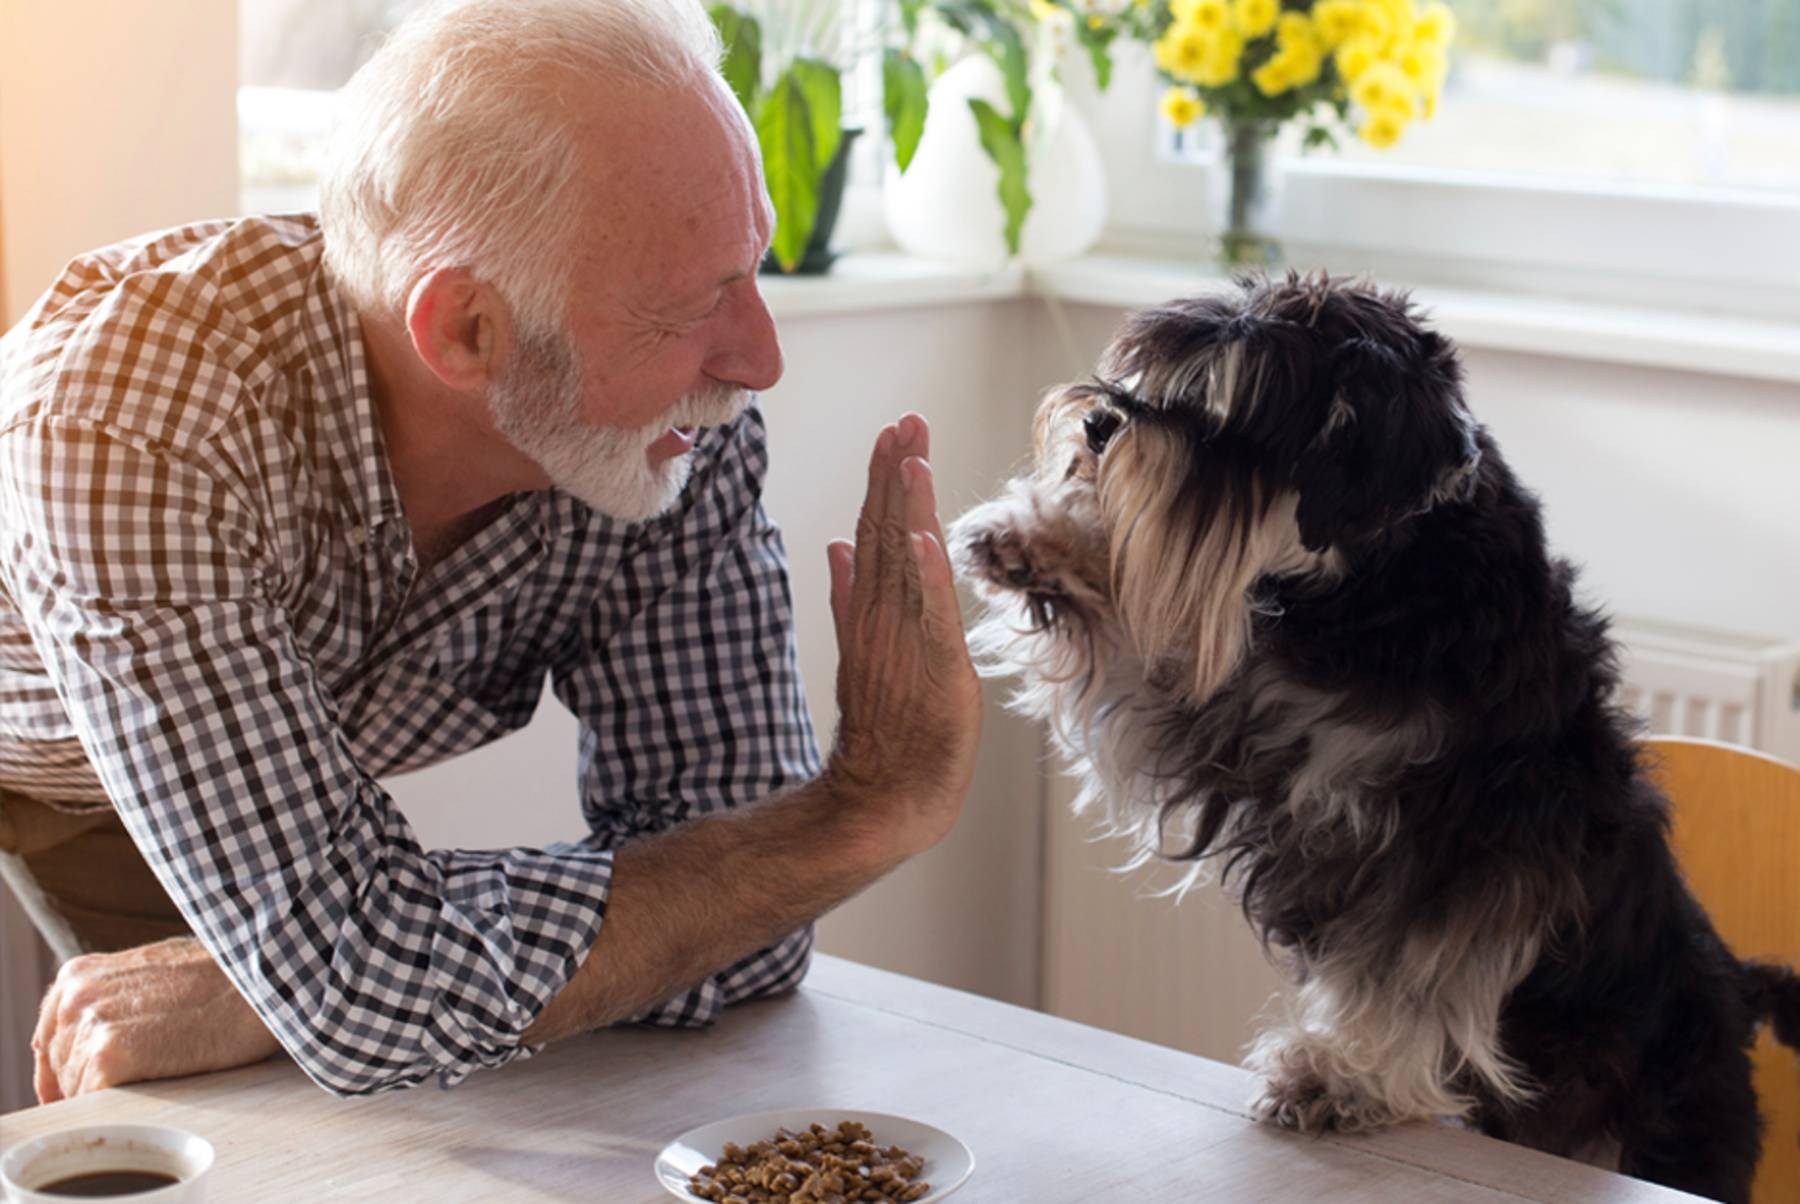 A senior man leans over the table to give his dog a high five